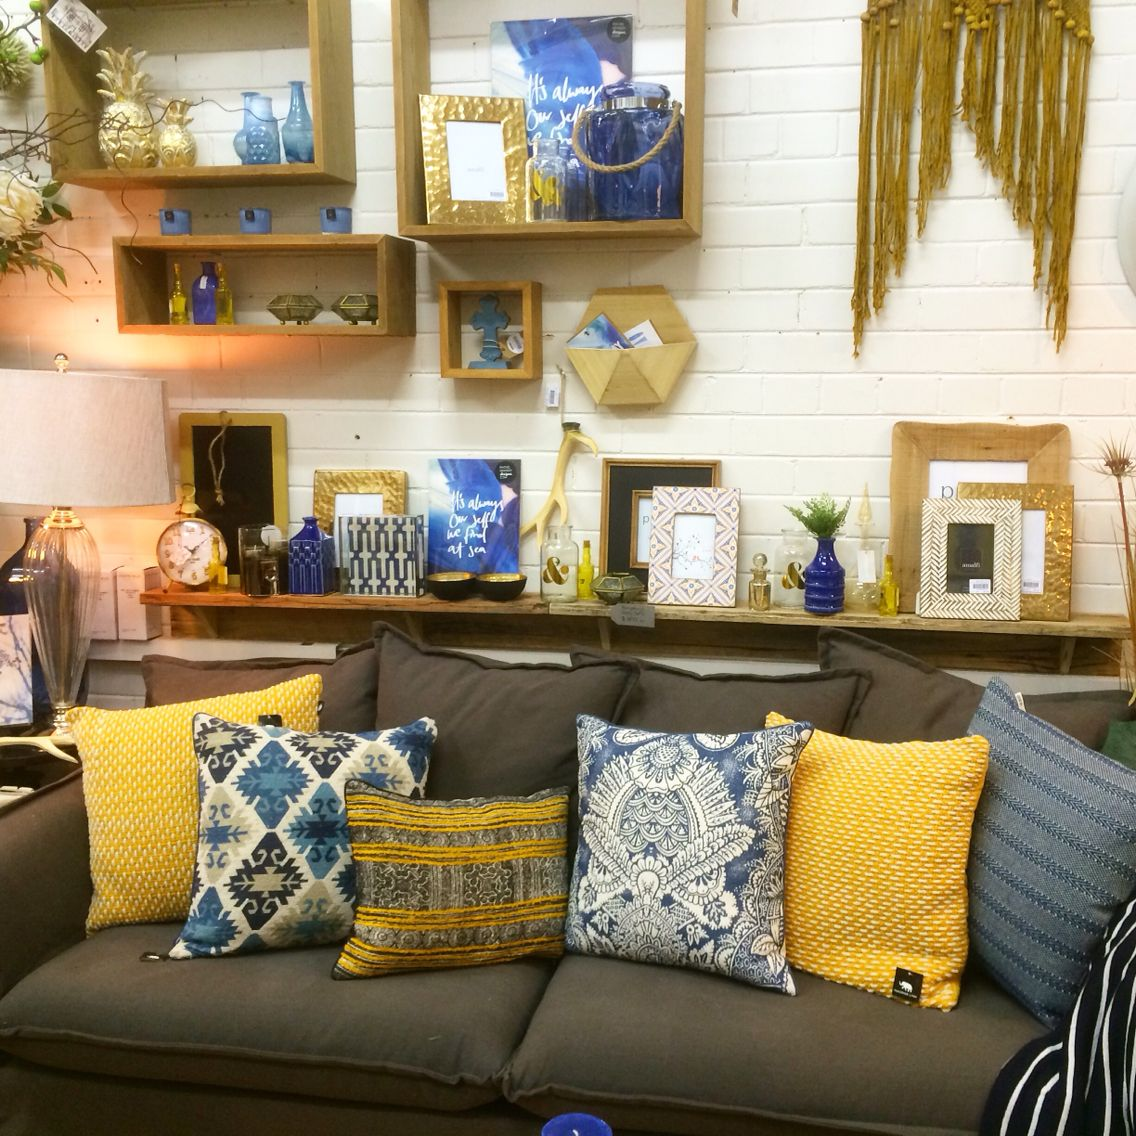 Mustard Accessories For Living Room Mustard And Indigo Shop Display Home Decor And Interiors